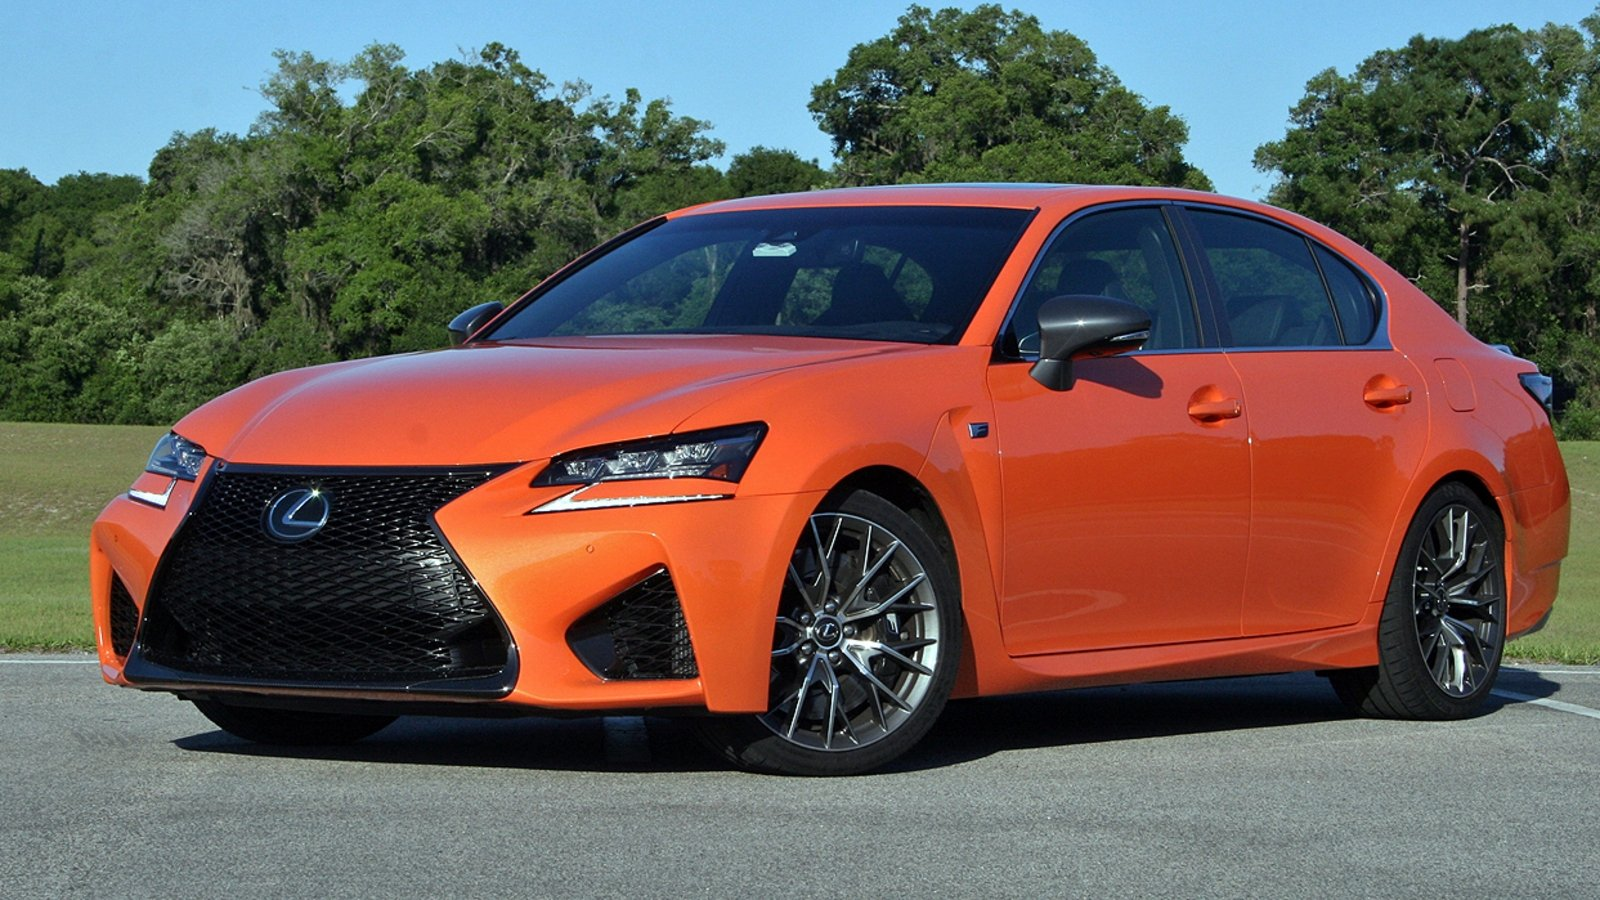 2016 Bmw M5 >> 2016 Lexus GS F – Driven Review - Top Speed